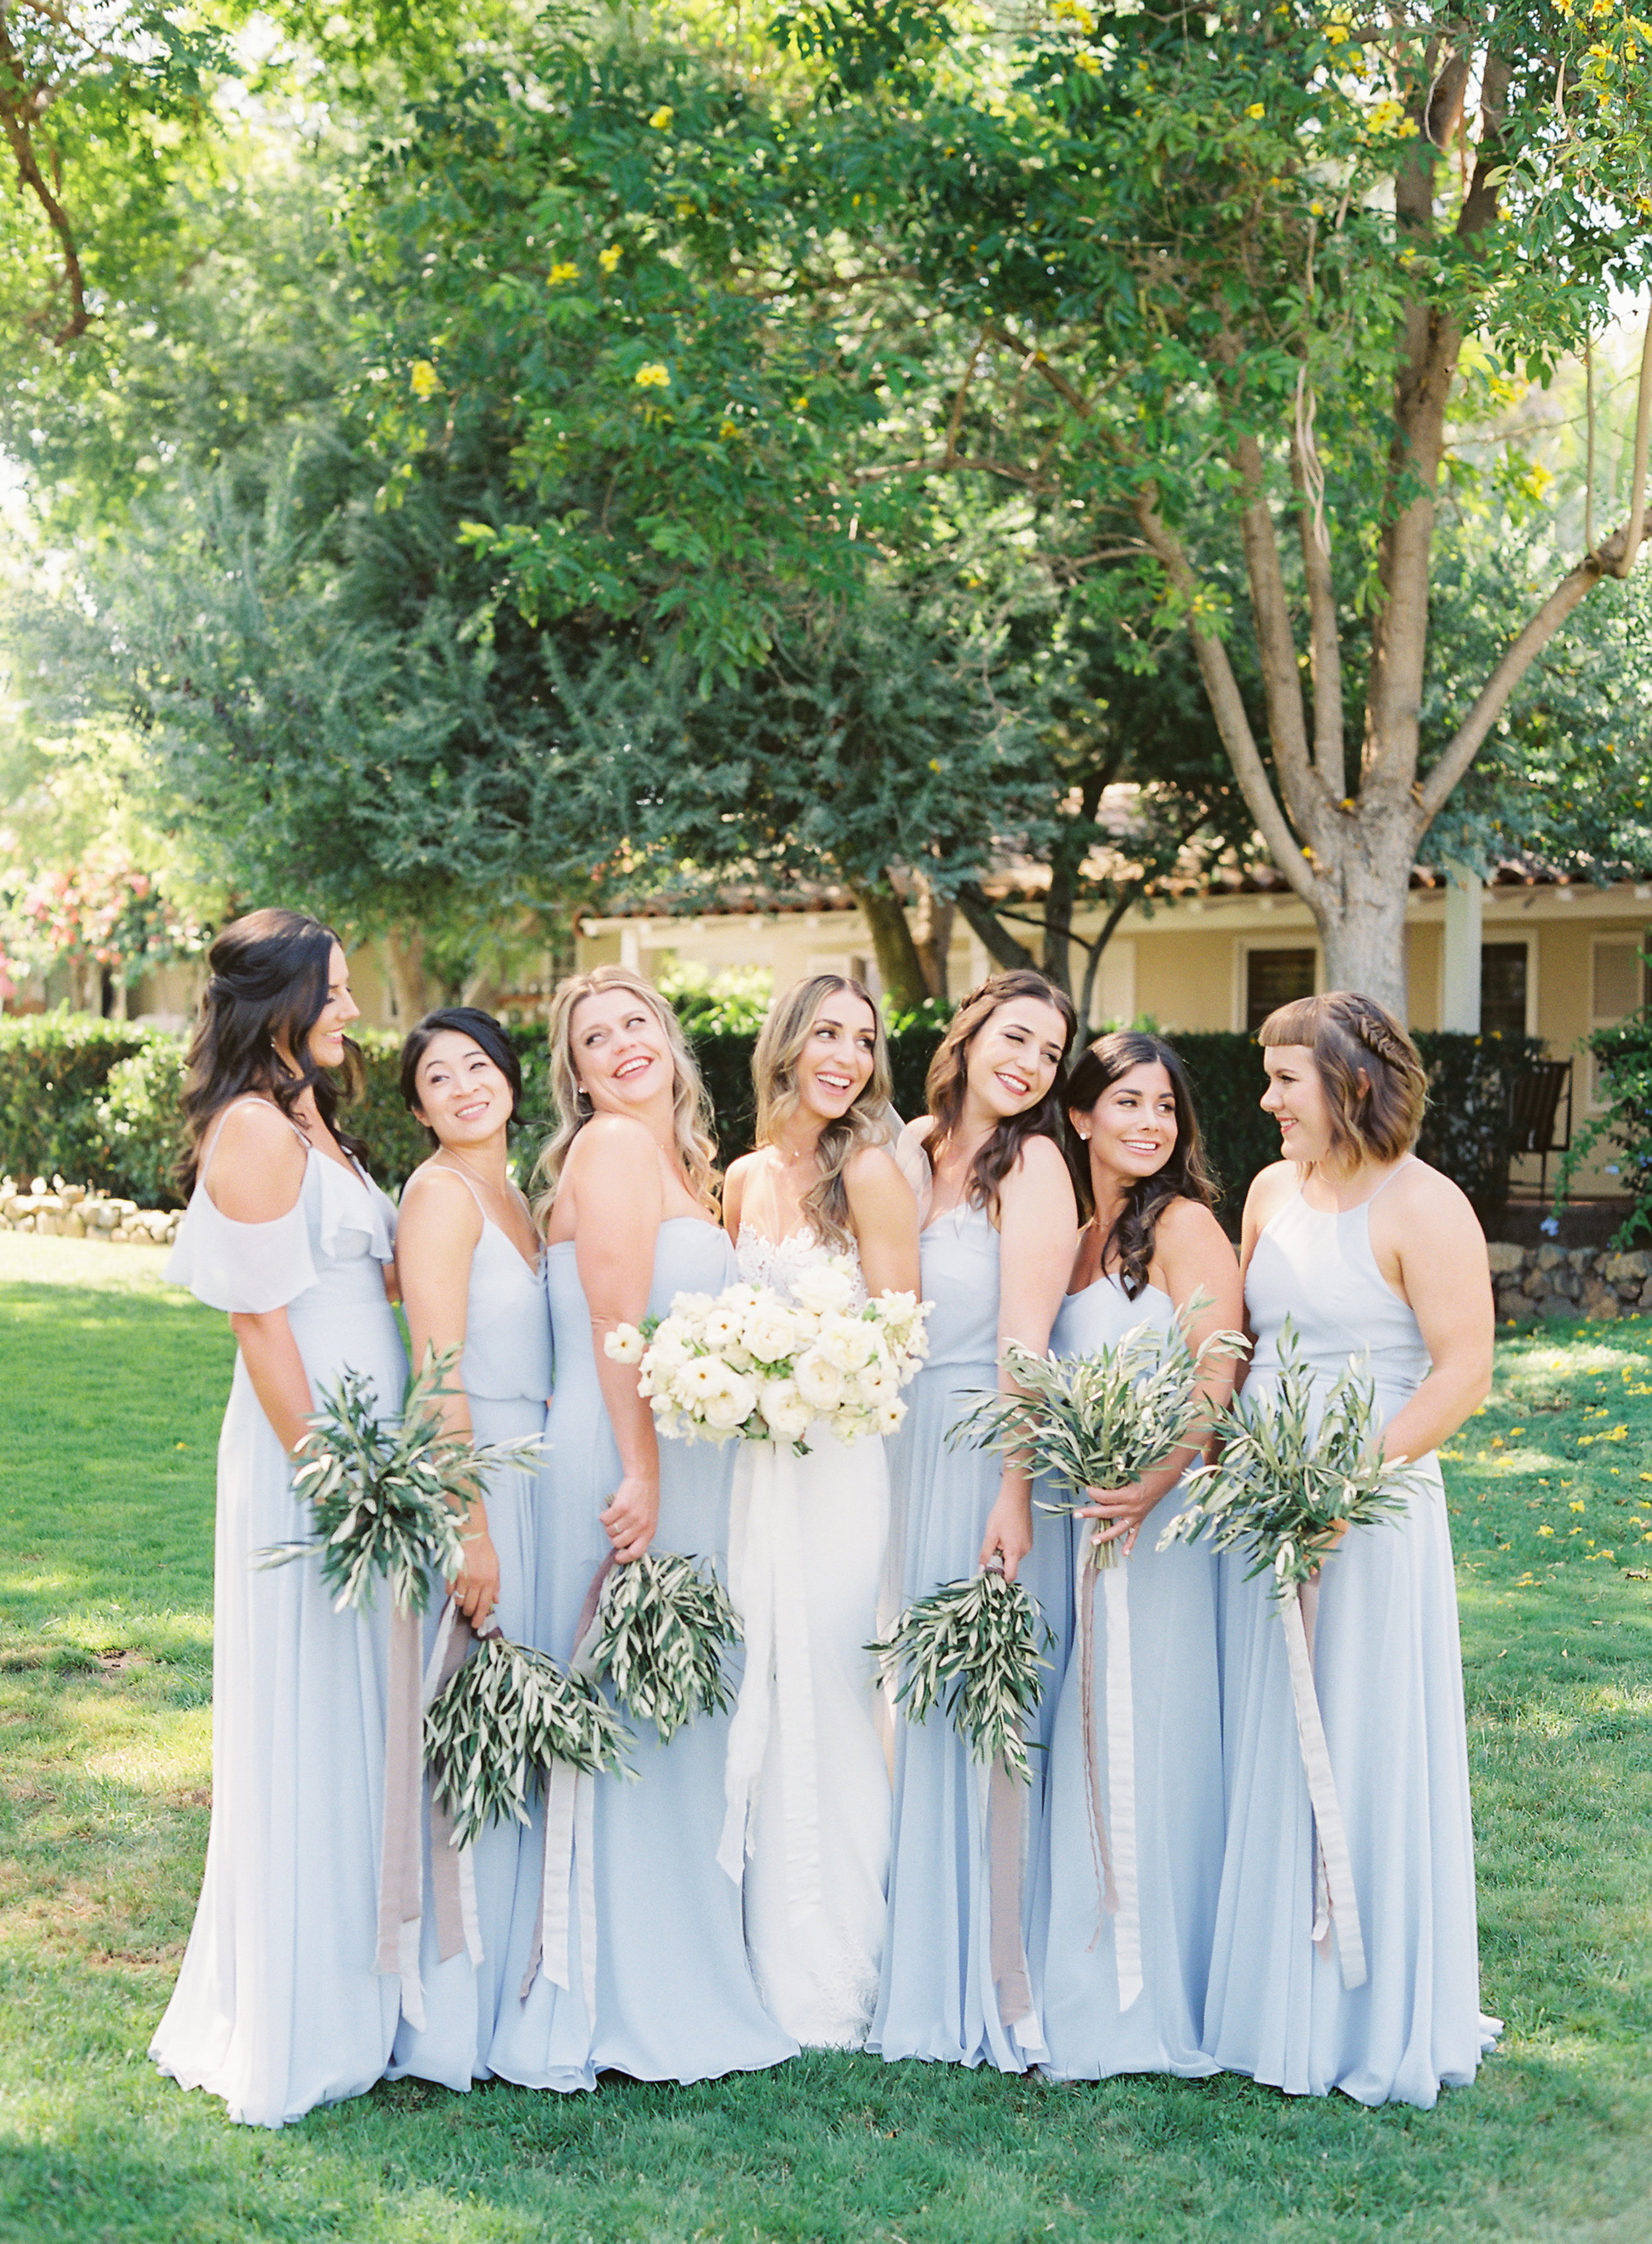 Inn-at-Rancho-Santa-Fe-Wedding-Film-3.jpg